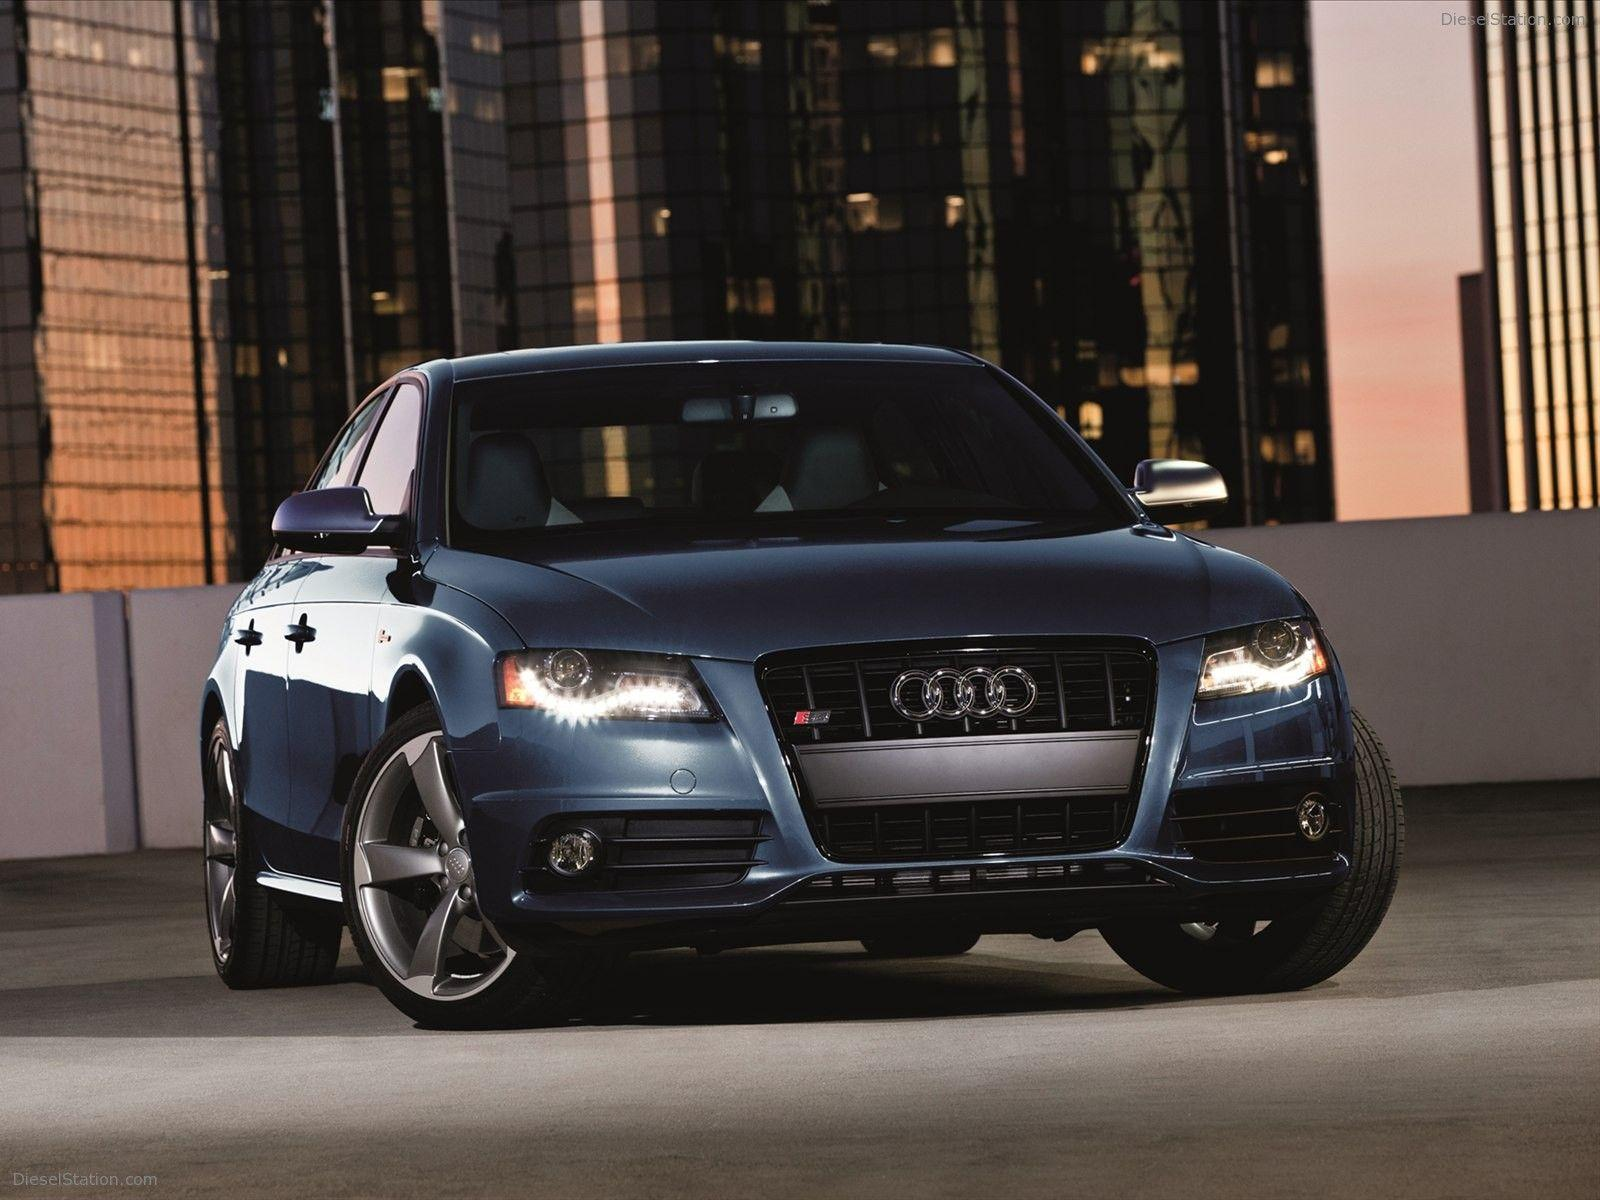 Audi S4 2012 Exotic Car Wallpapers of 34 : Diesel Station